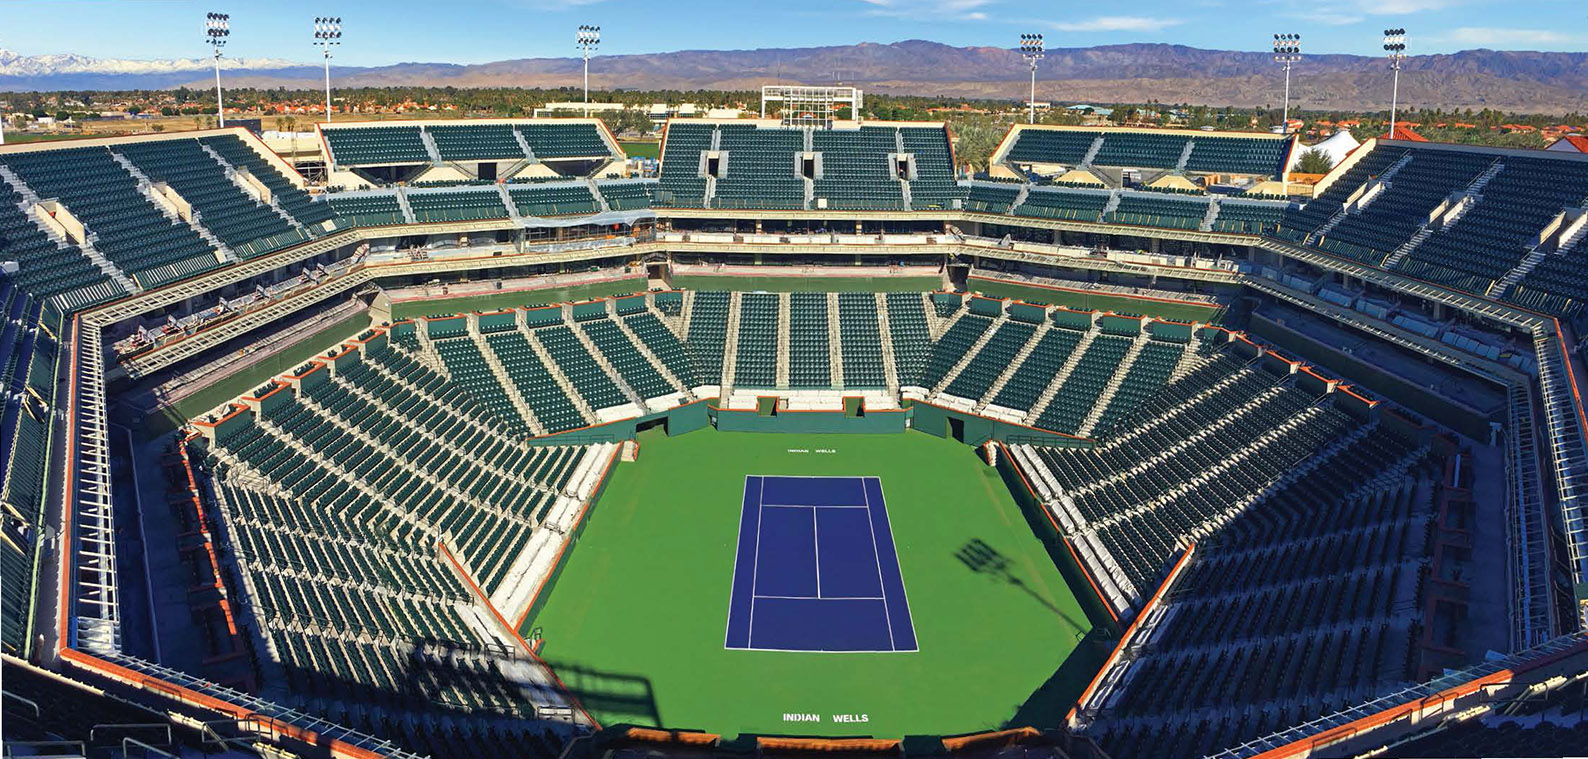 indian wells tennis garden stadium 1 renovation - Indian Wells Tennis Garden